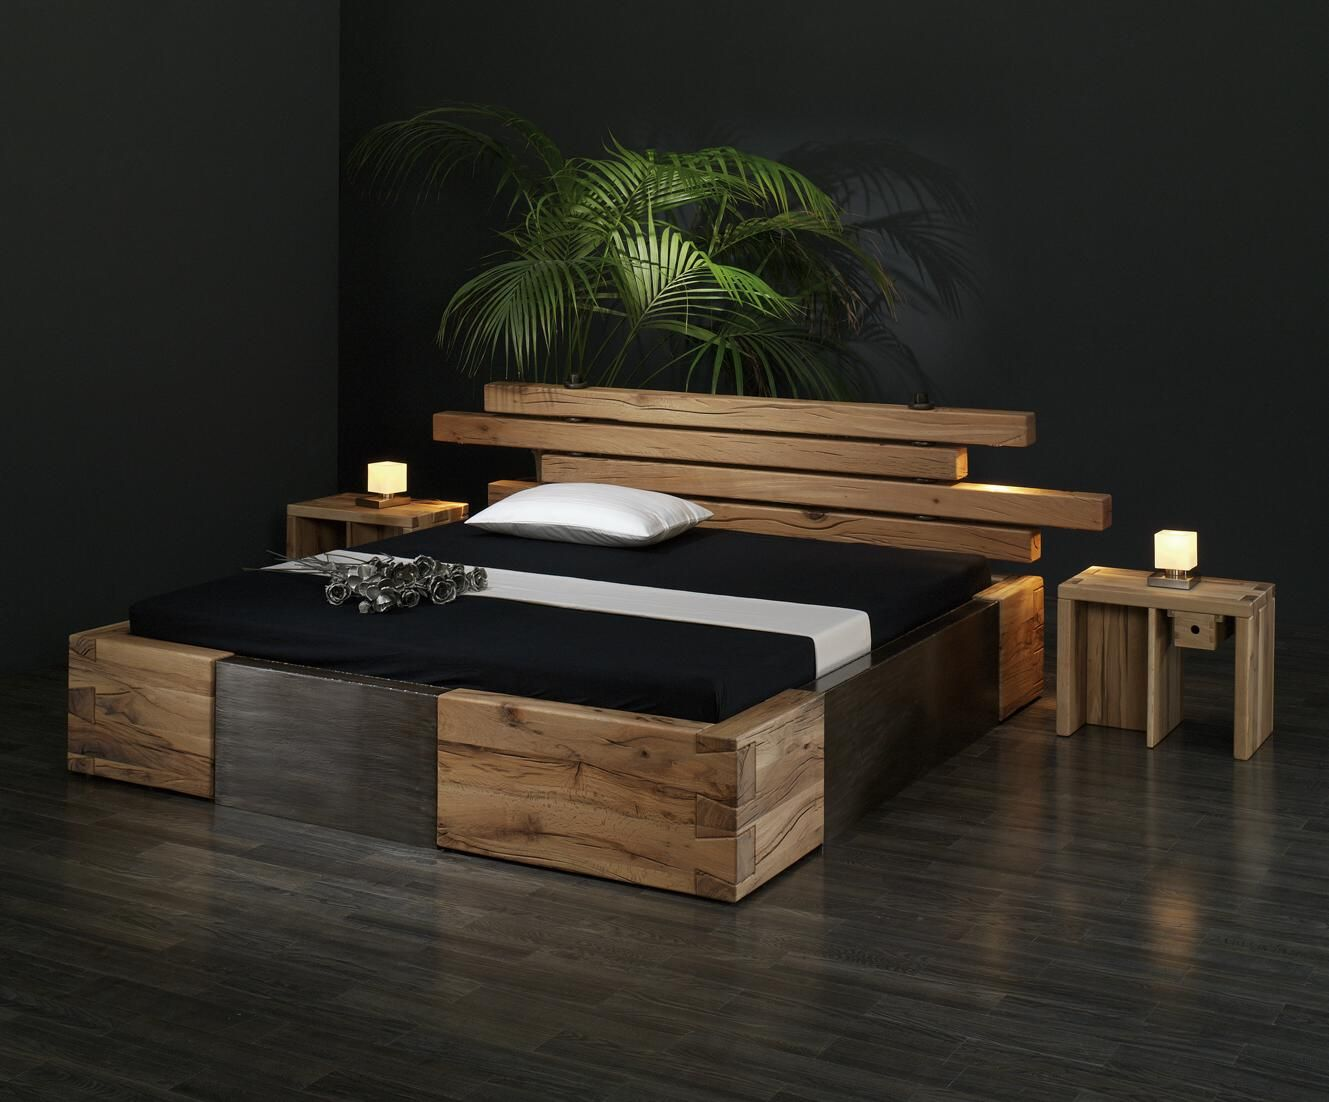 holz bett design google search bedroom in 2018 pinterest bett schlafzimmer und m bel. Black Bedroom Furniture Sets. Home Design Ideas